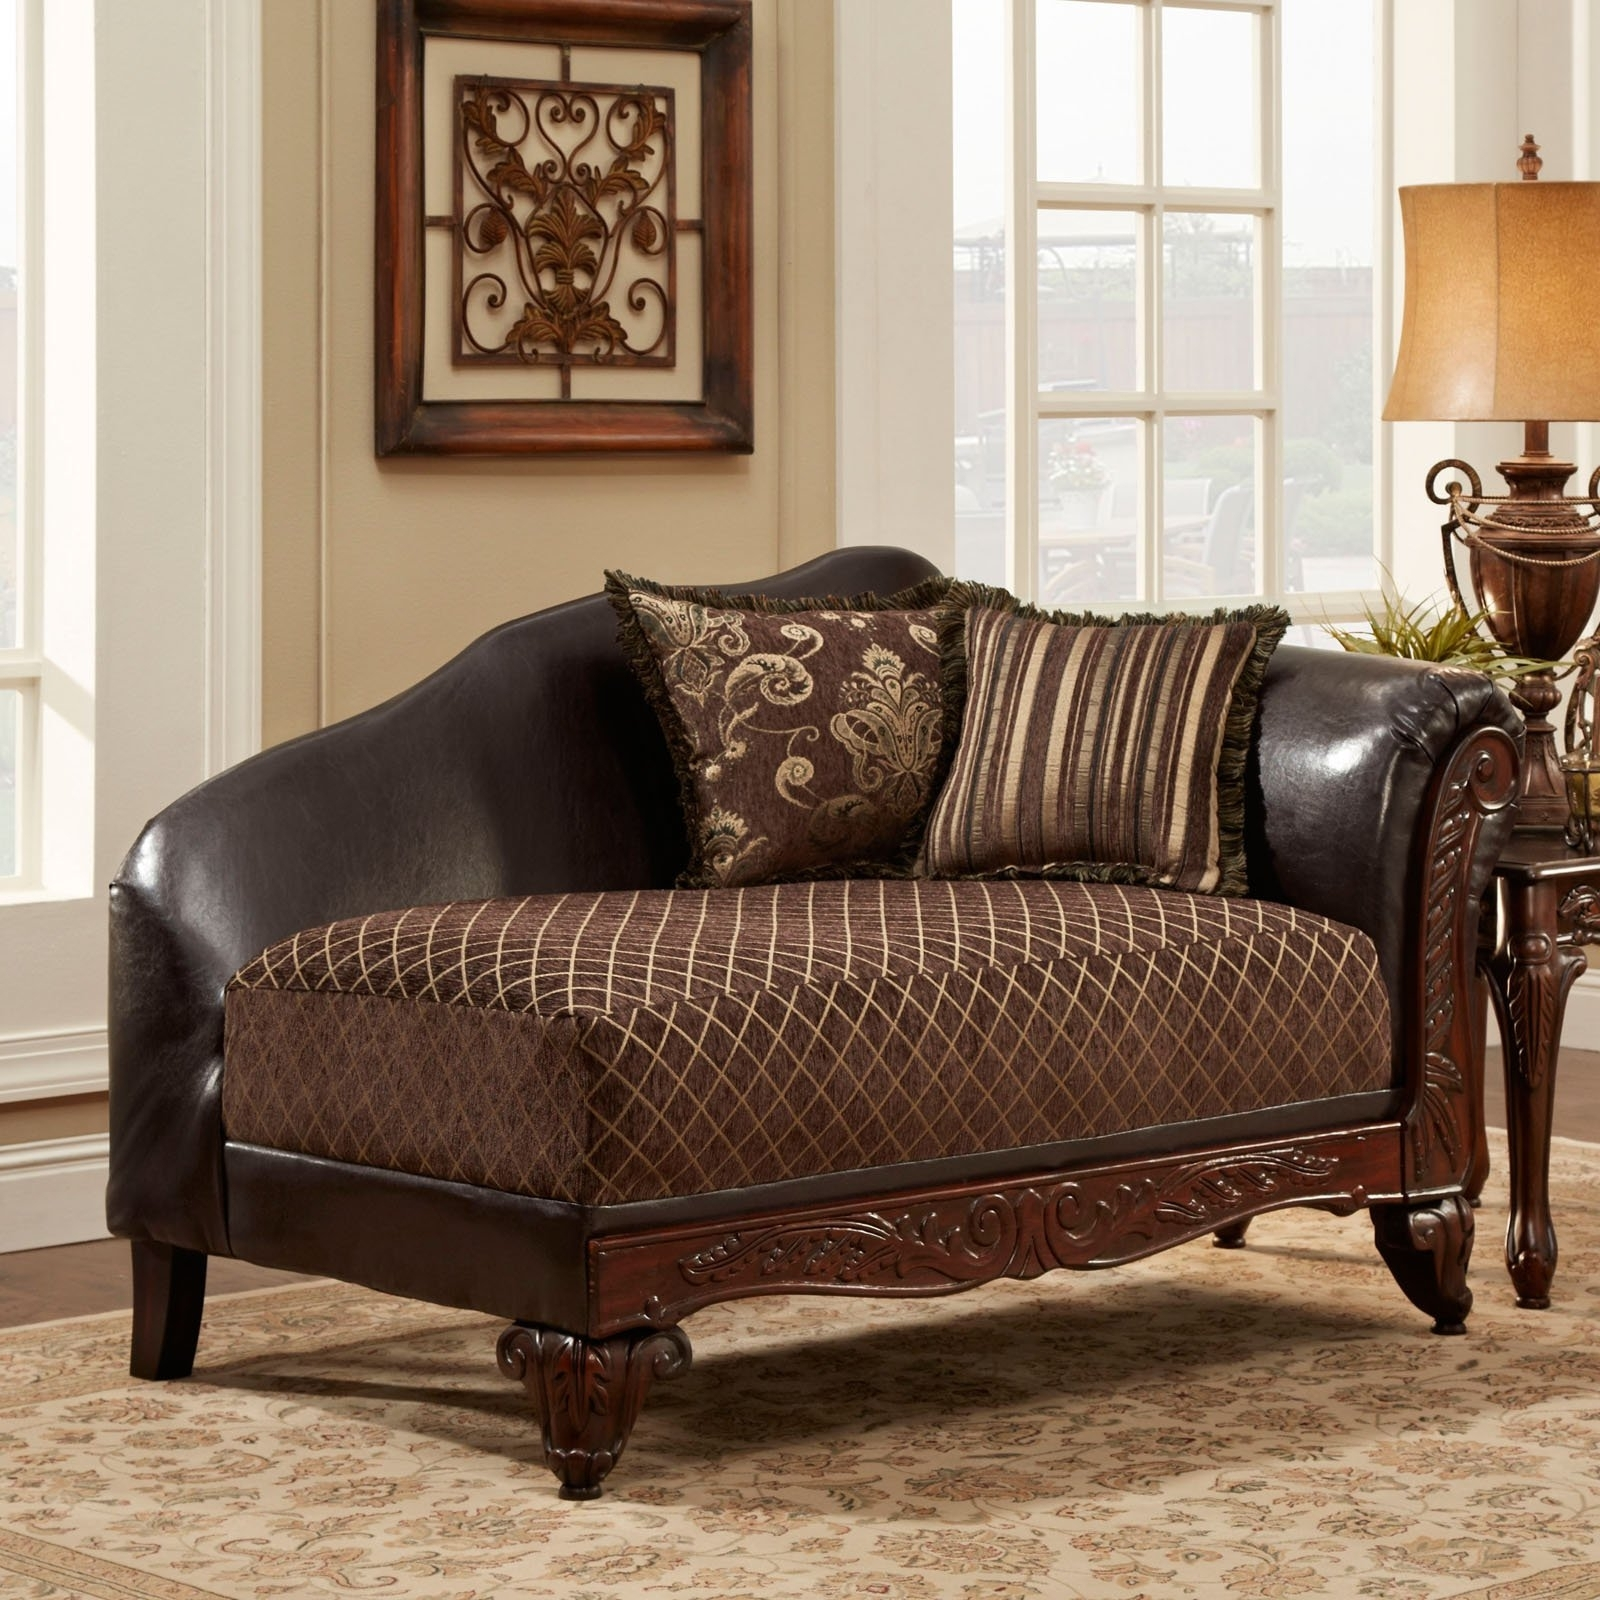 Hayneedle Regarding Brown Chaise Lounges (View 3 of 15)